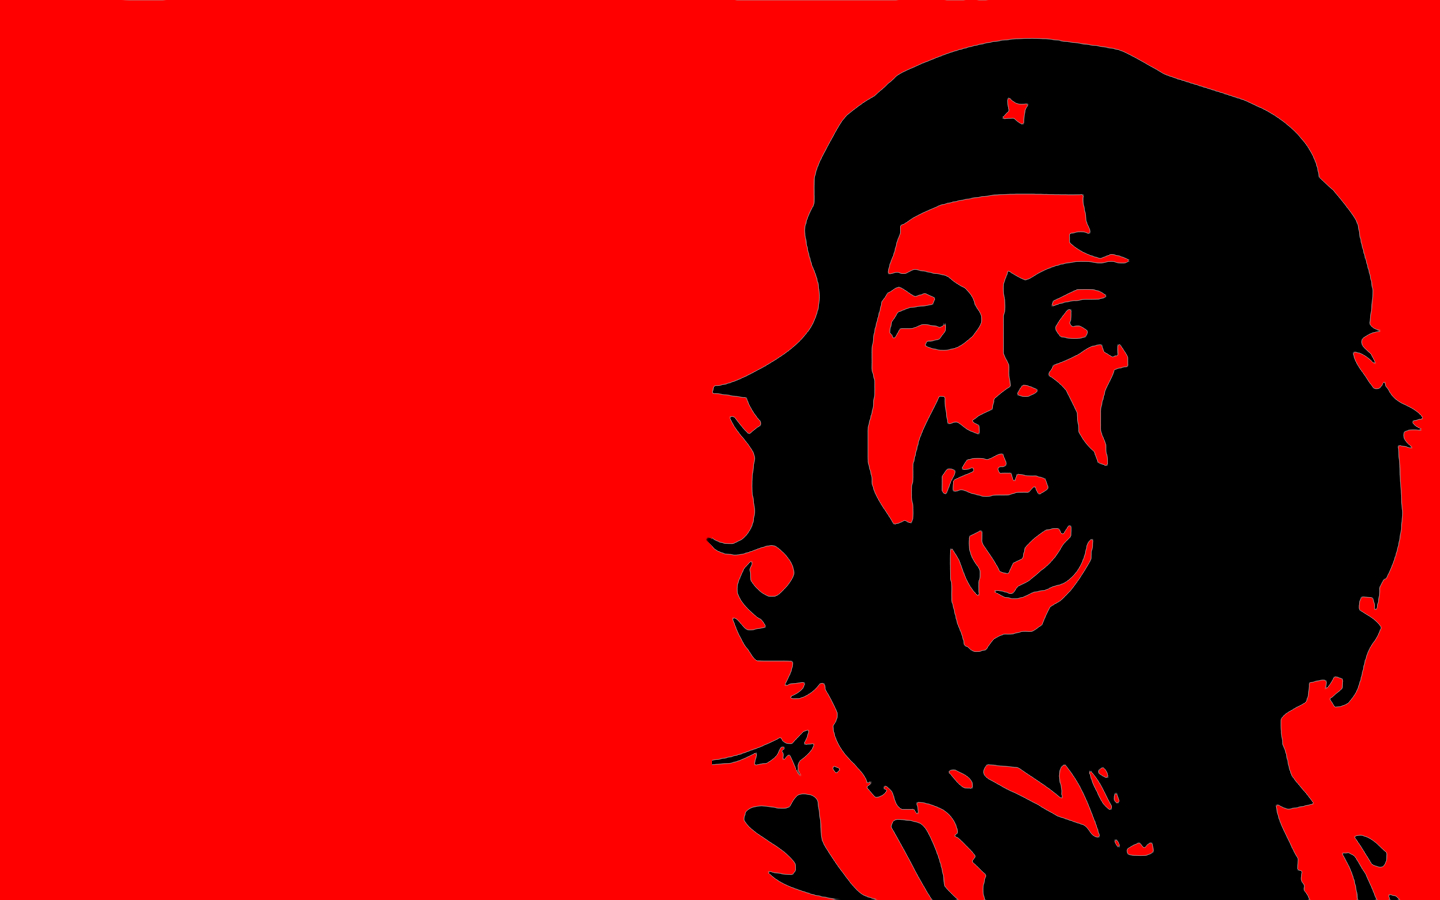 che guevara 640x480 wallpaper for android Car Pictures 1440x900